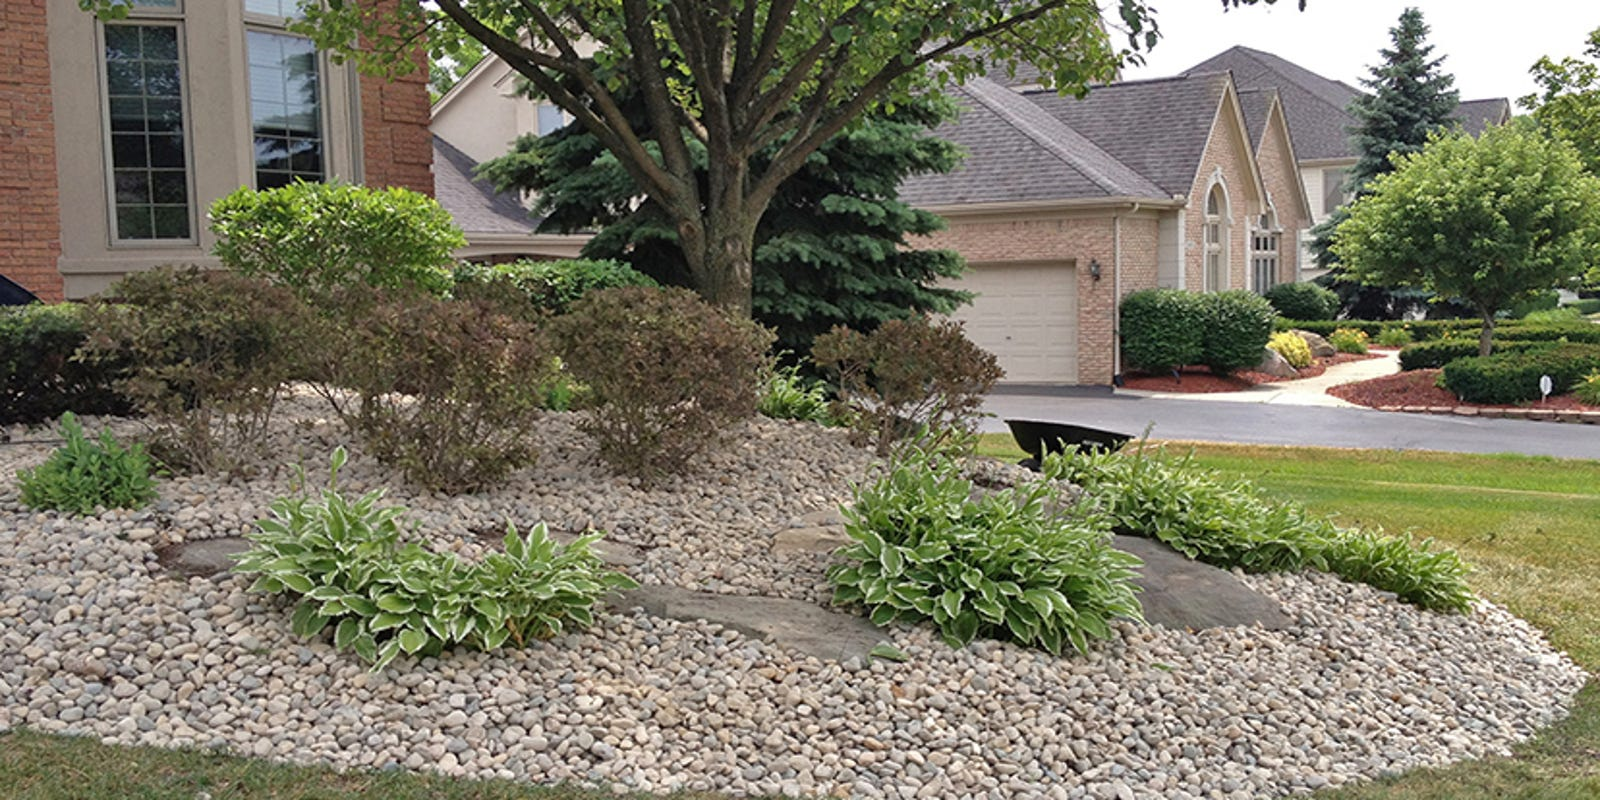 Landscaping With Stones And Mulch Mycoffeepot Org